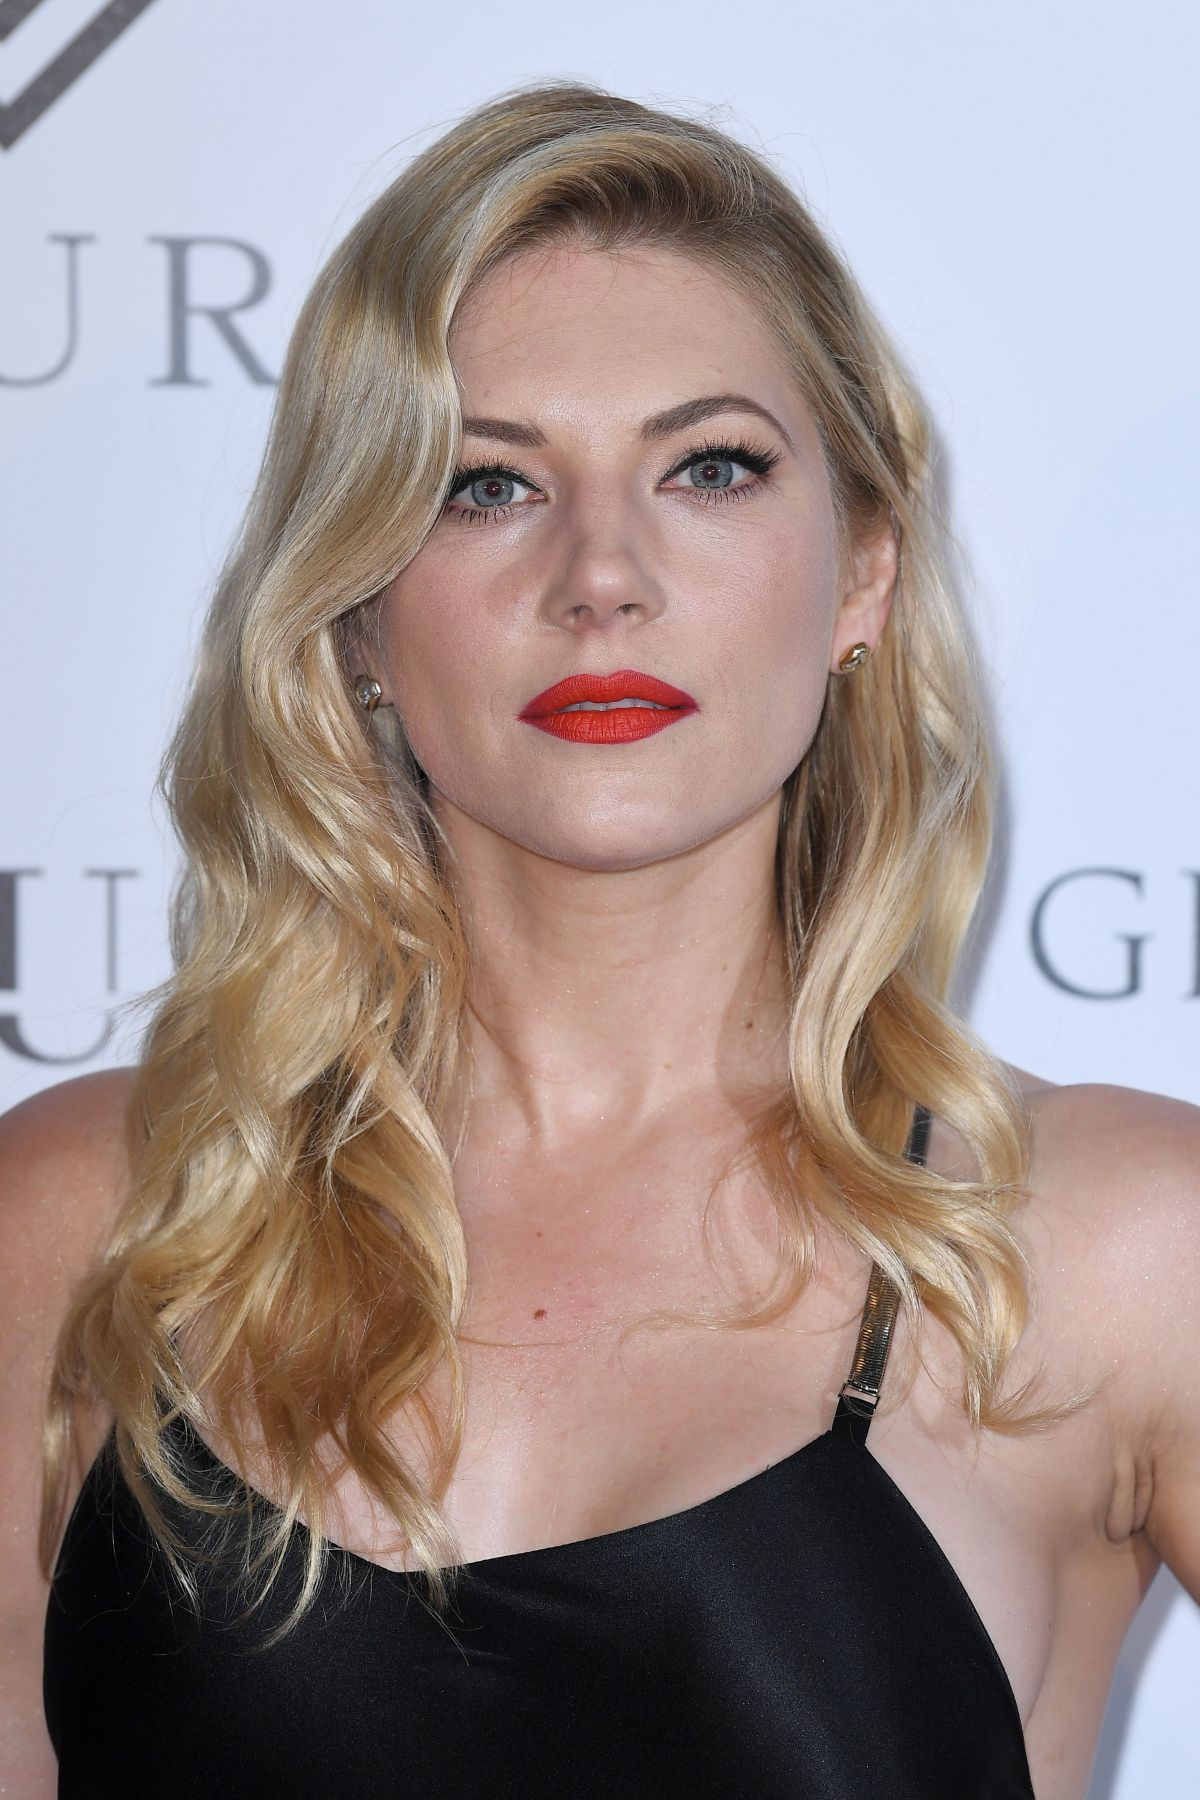 31c02182383 KATHERYN WINNICK at Global Gift Foundation USA Women s Empowerment Luncheon  in Los Angeles 05 10 2018